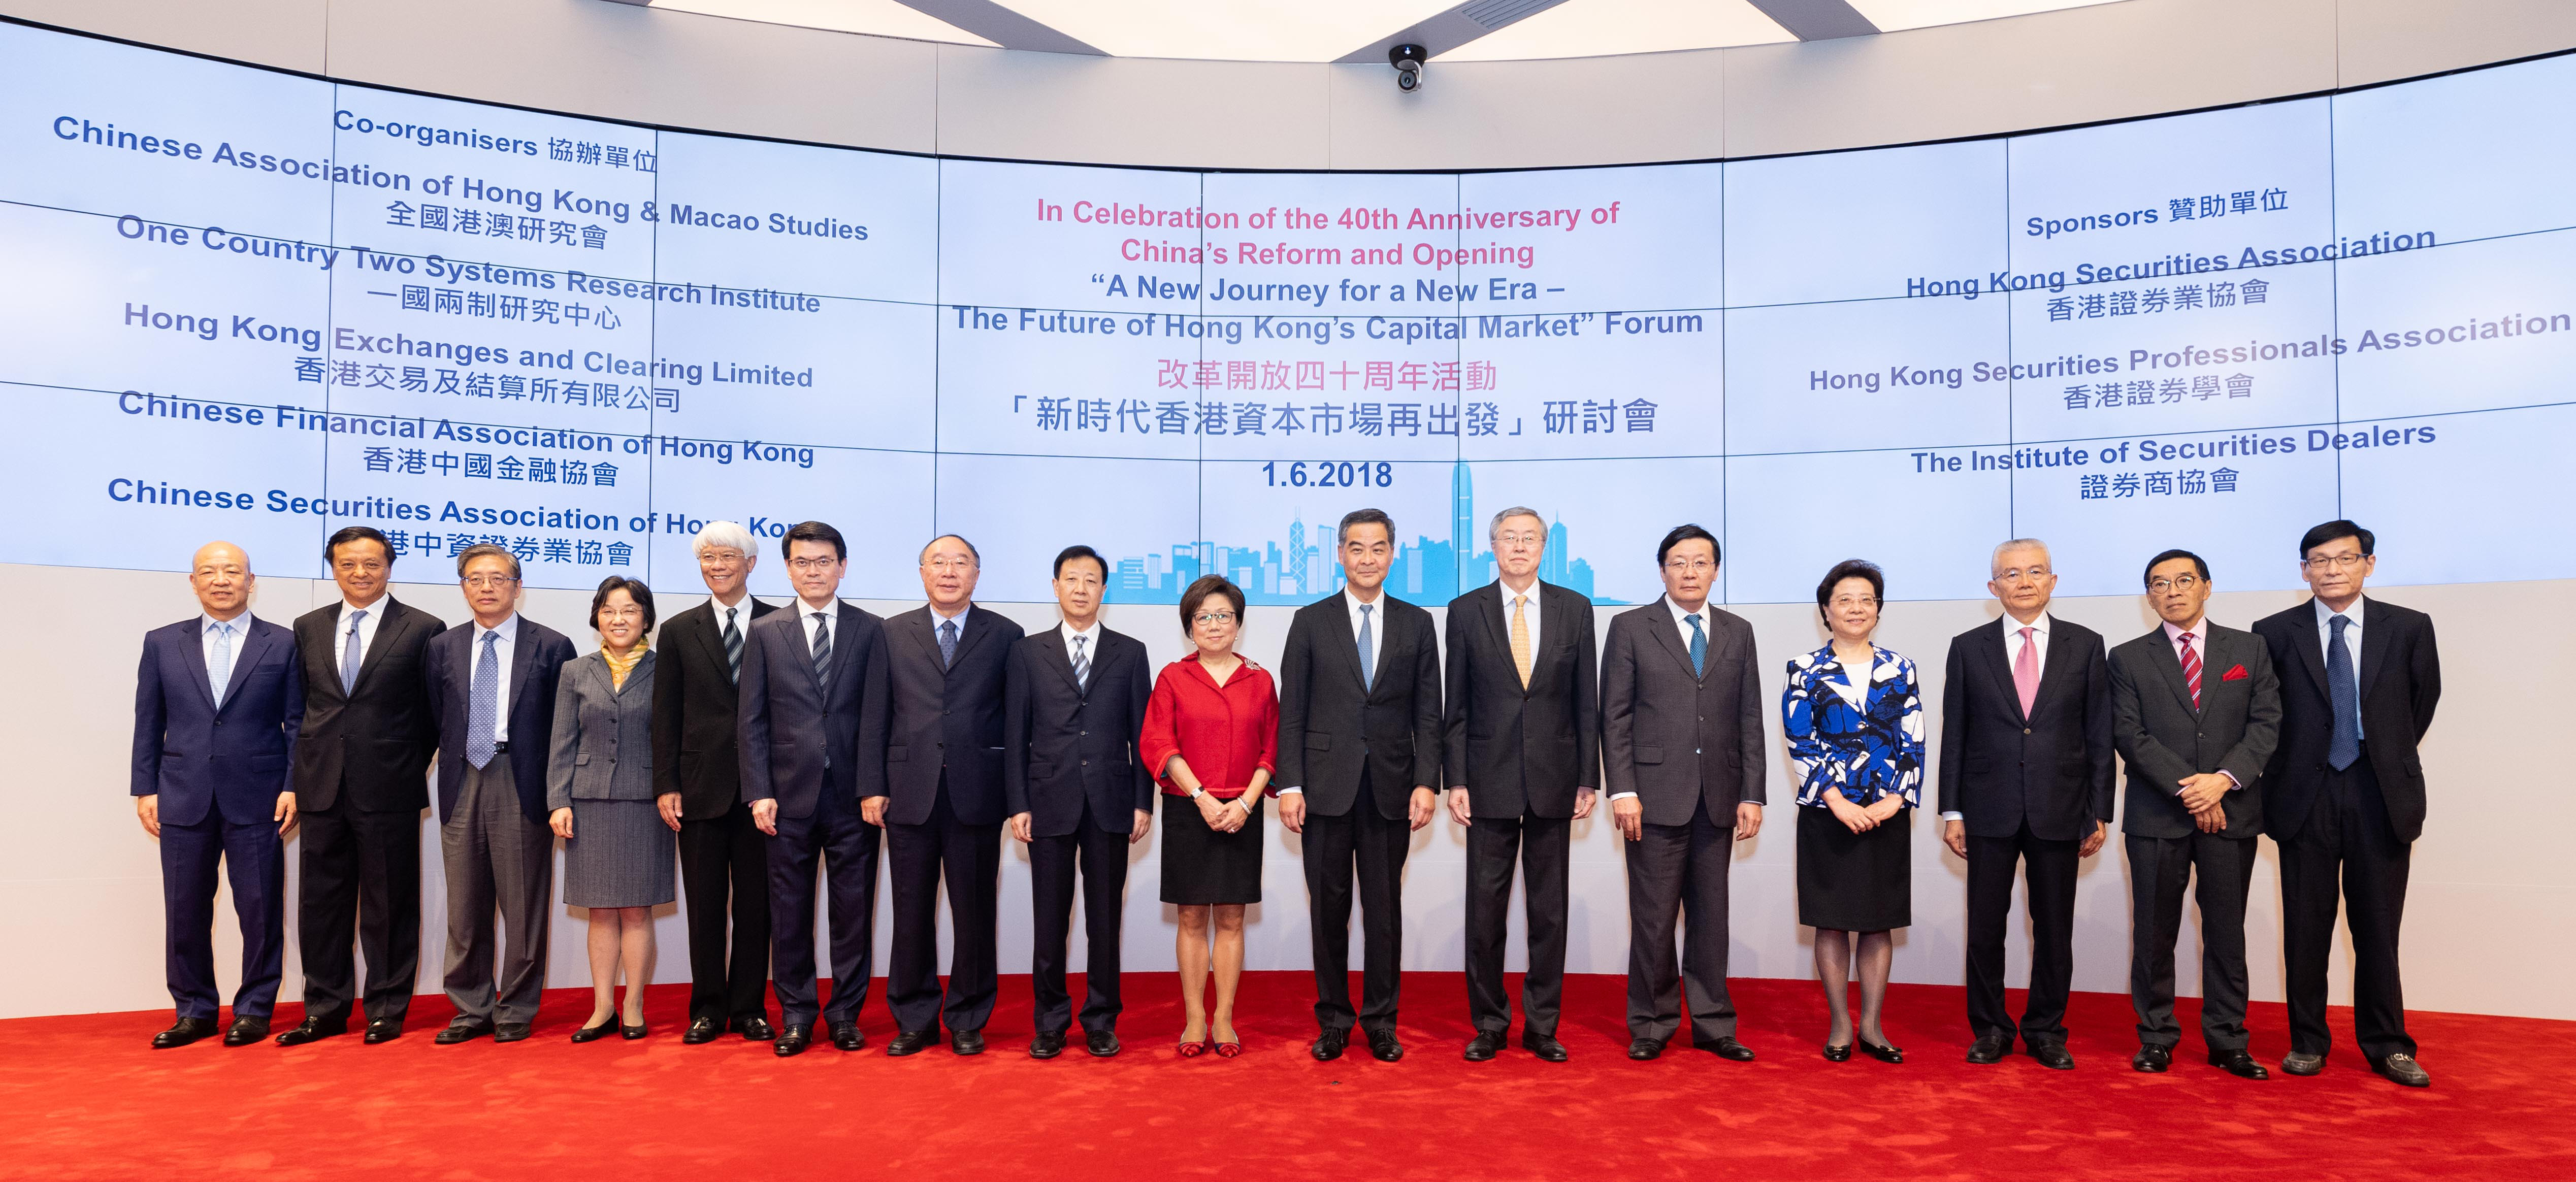 HIGH-LEVEL FORUM ON HONG KONG MARKET'S FUTURE ROLE AS CHINA